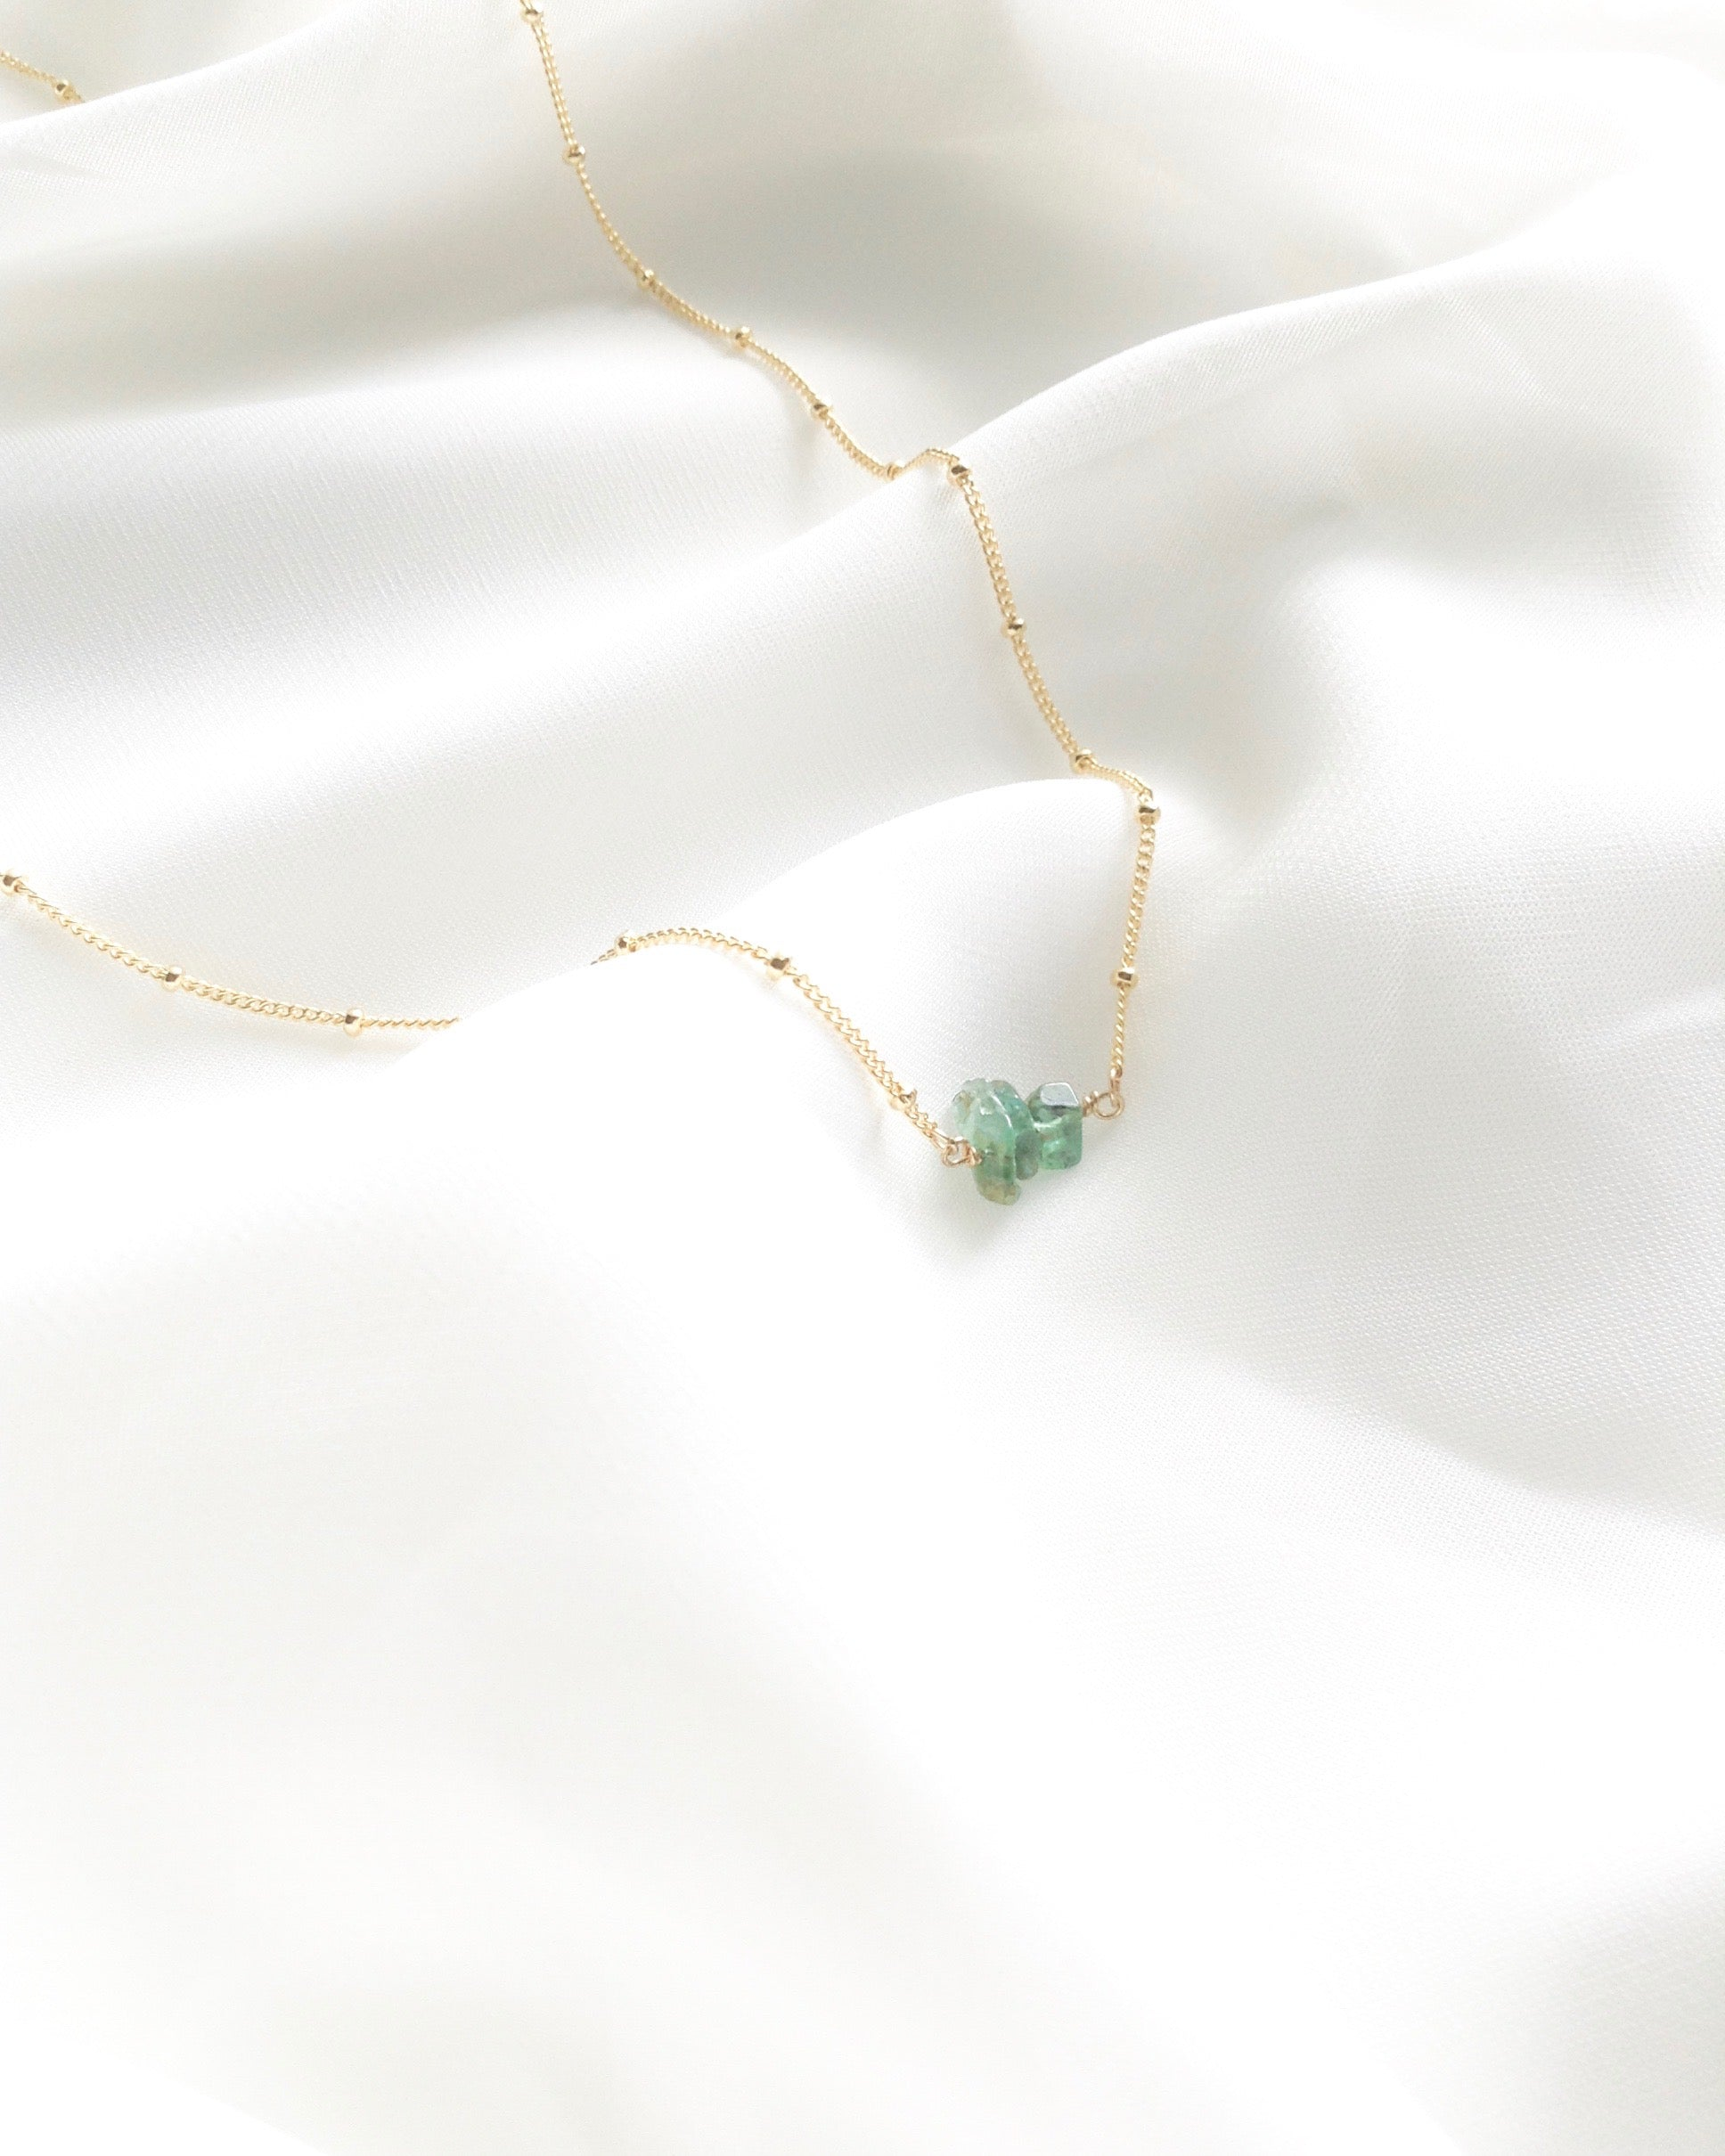 Delicate Raw Emerald Crystal Satellite Chain Necklace | IB Jewelry